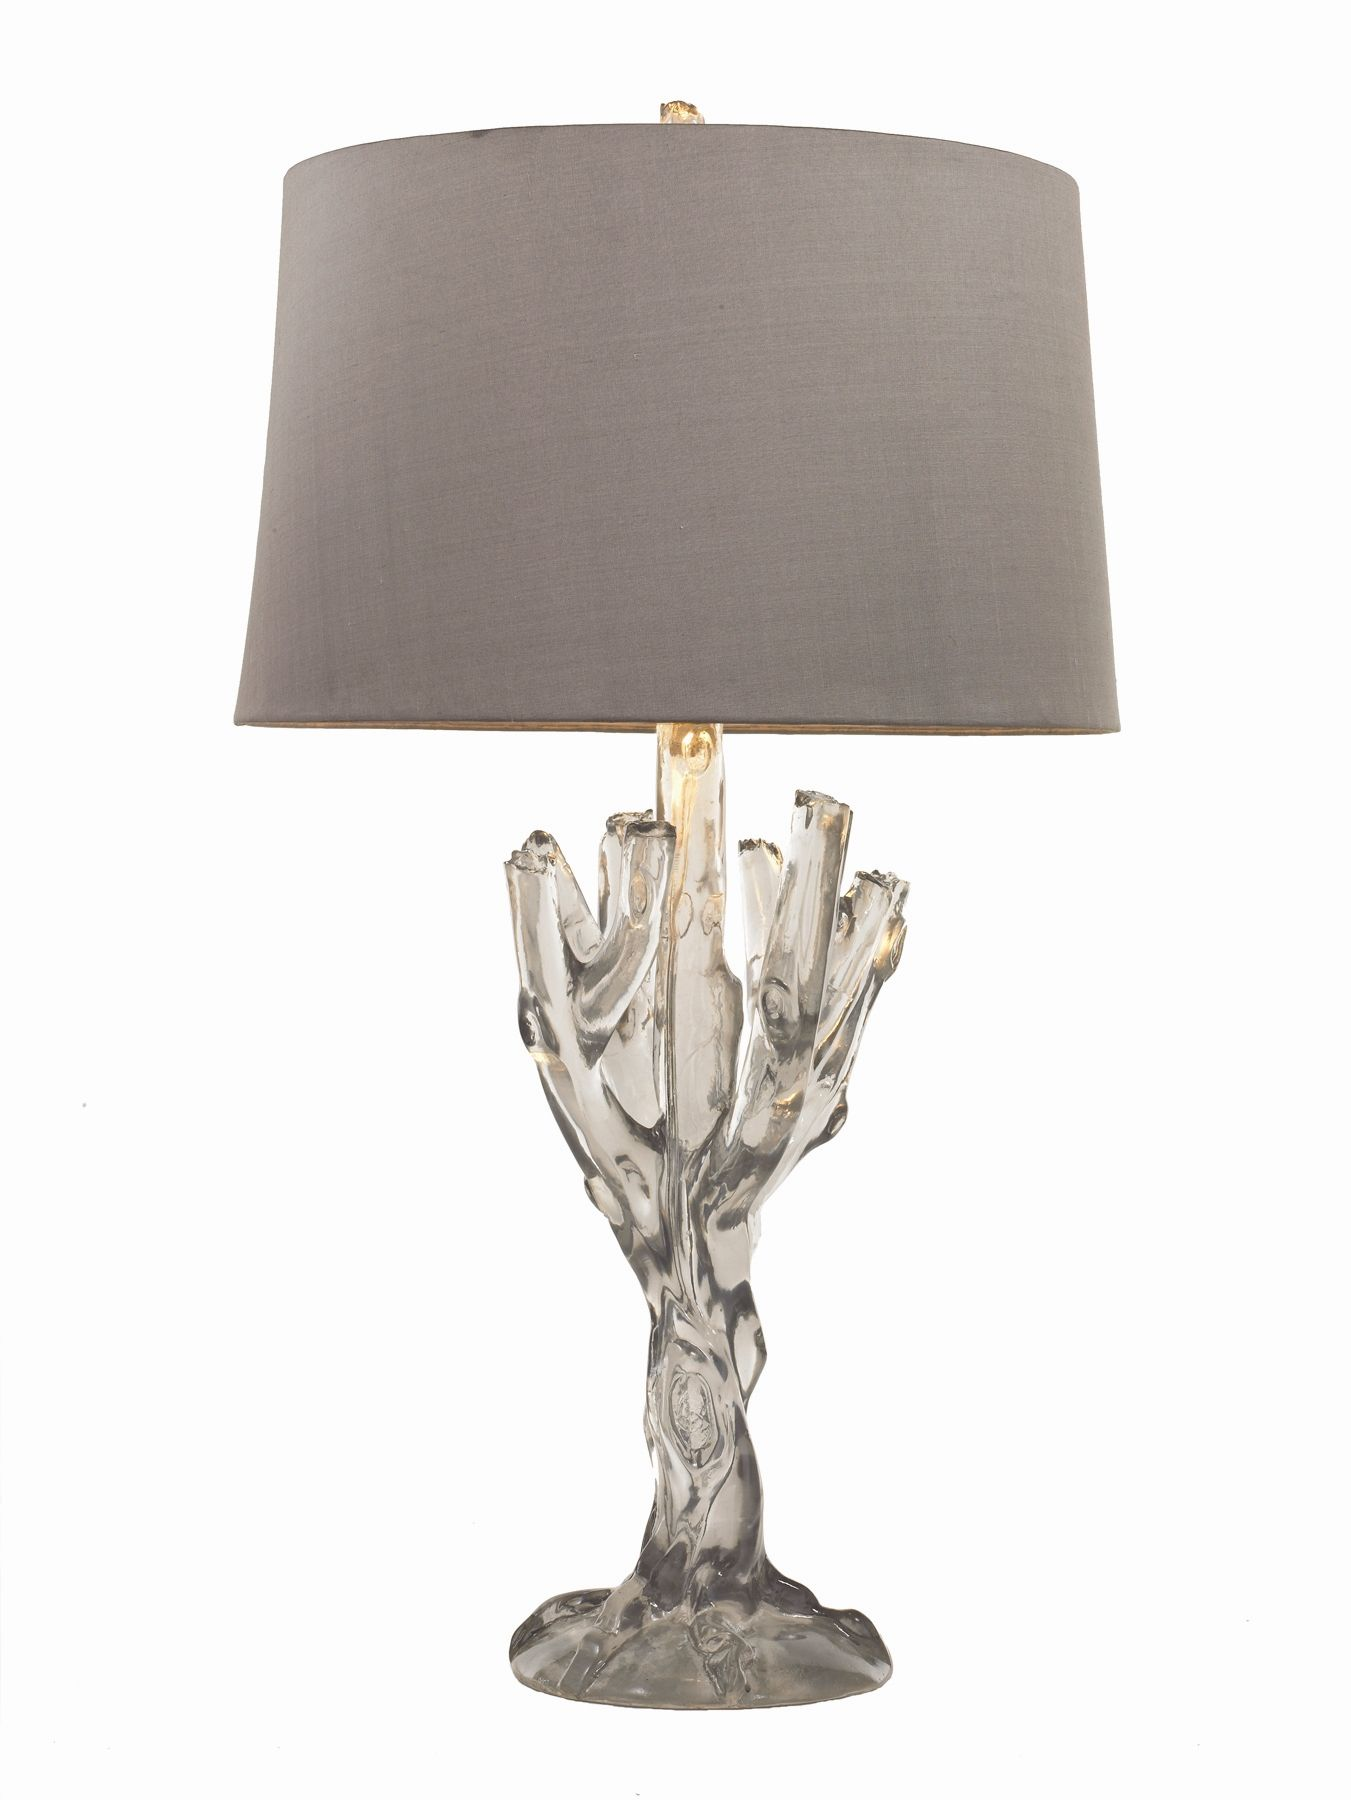 arteriors home smoked ice smithe lamp with silver silk shade style rh pinterest com